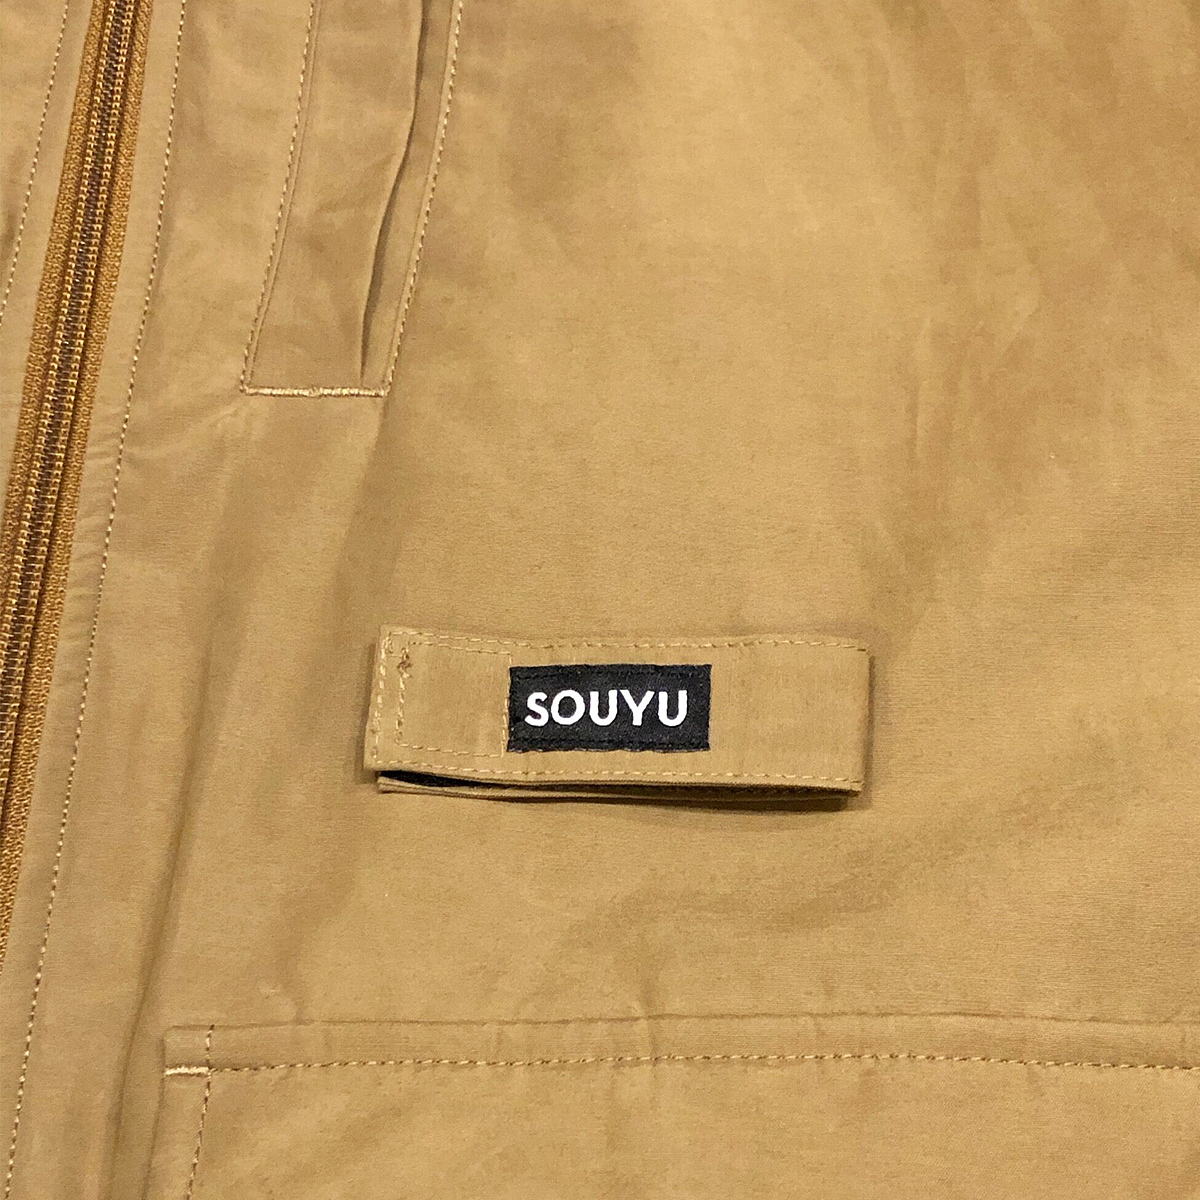 SOUYU OUTFITTERS ソーユーアウトフィッターズ FIELD JACKET